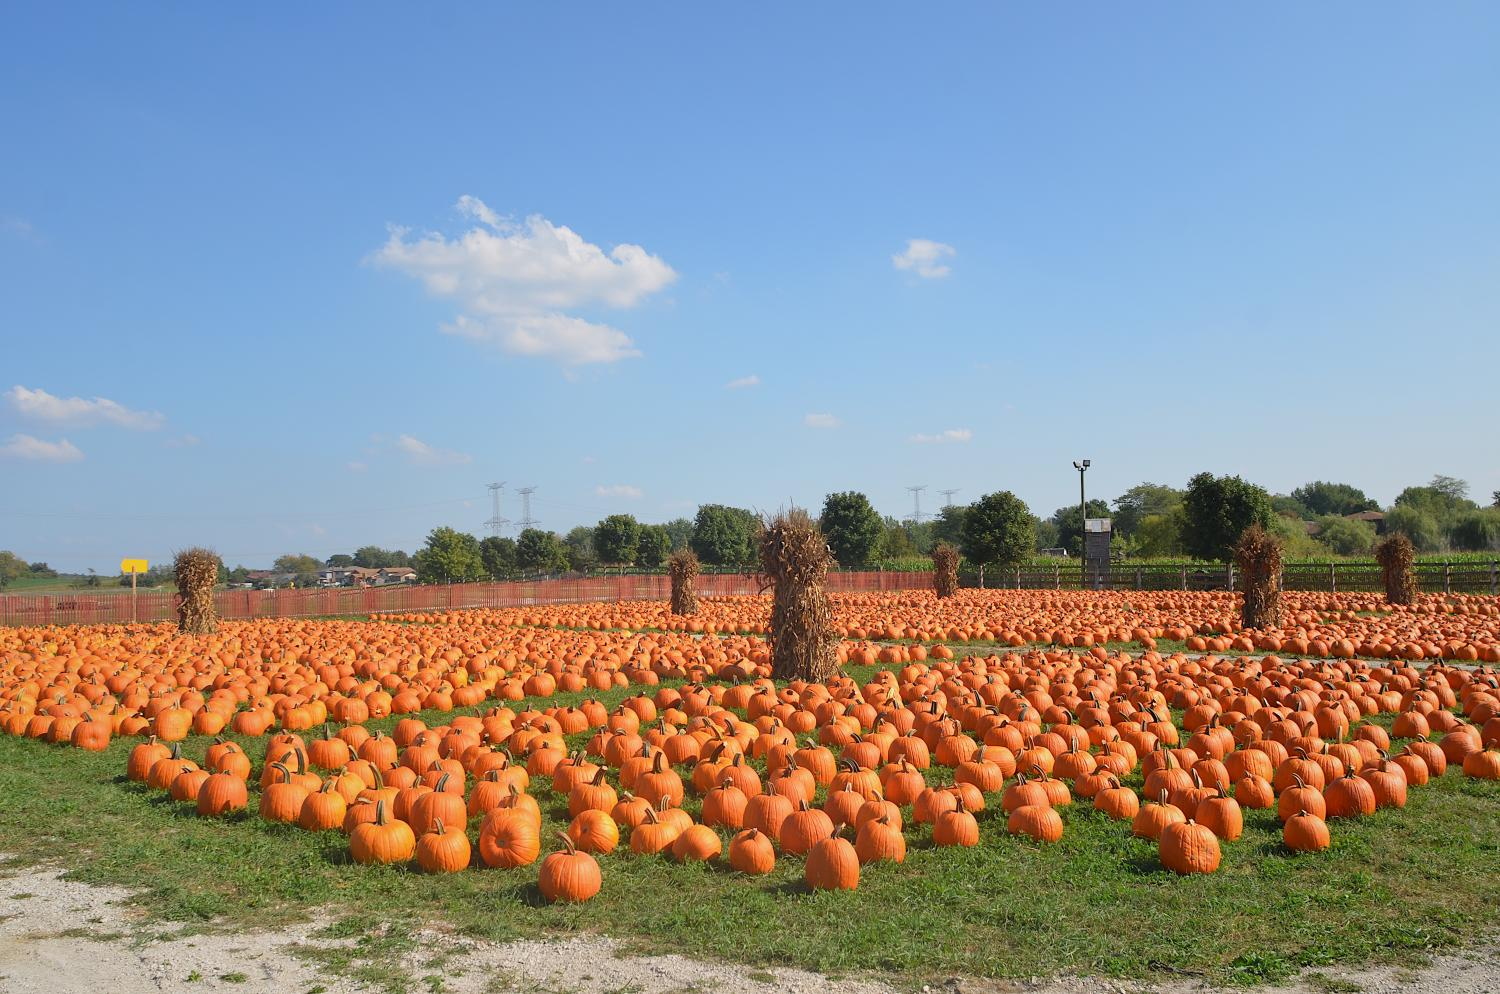 With autumn just beginning, it's the best time to visit pumpkin farms. Bengston's Pumpkin Farm, in Homer Glen, provides a field of pumpkins to choose from.